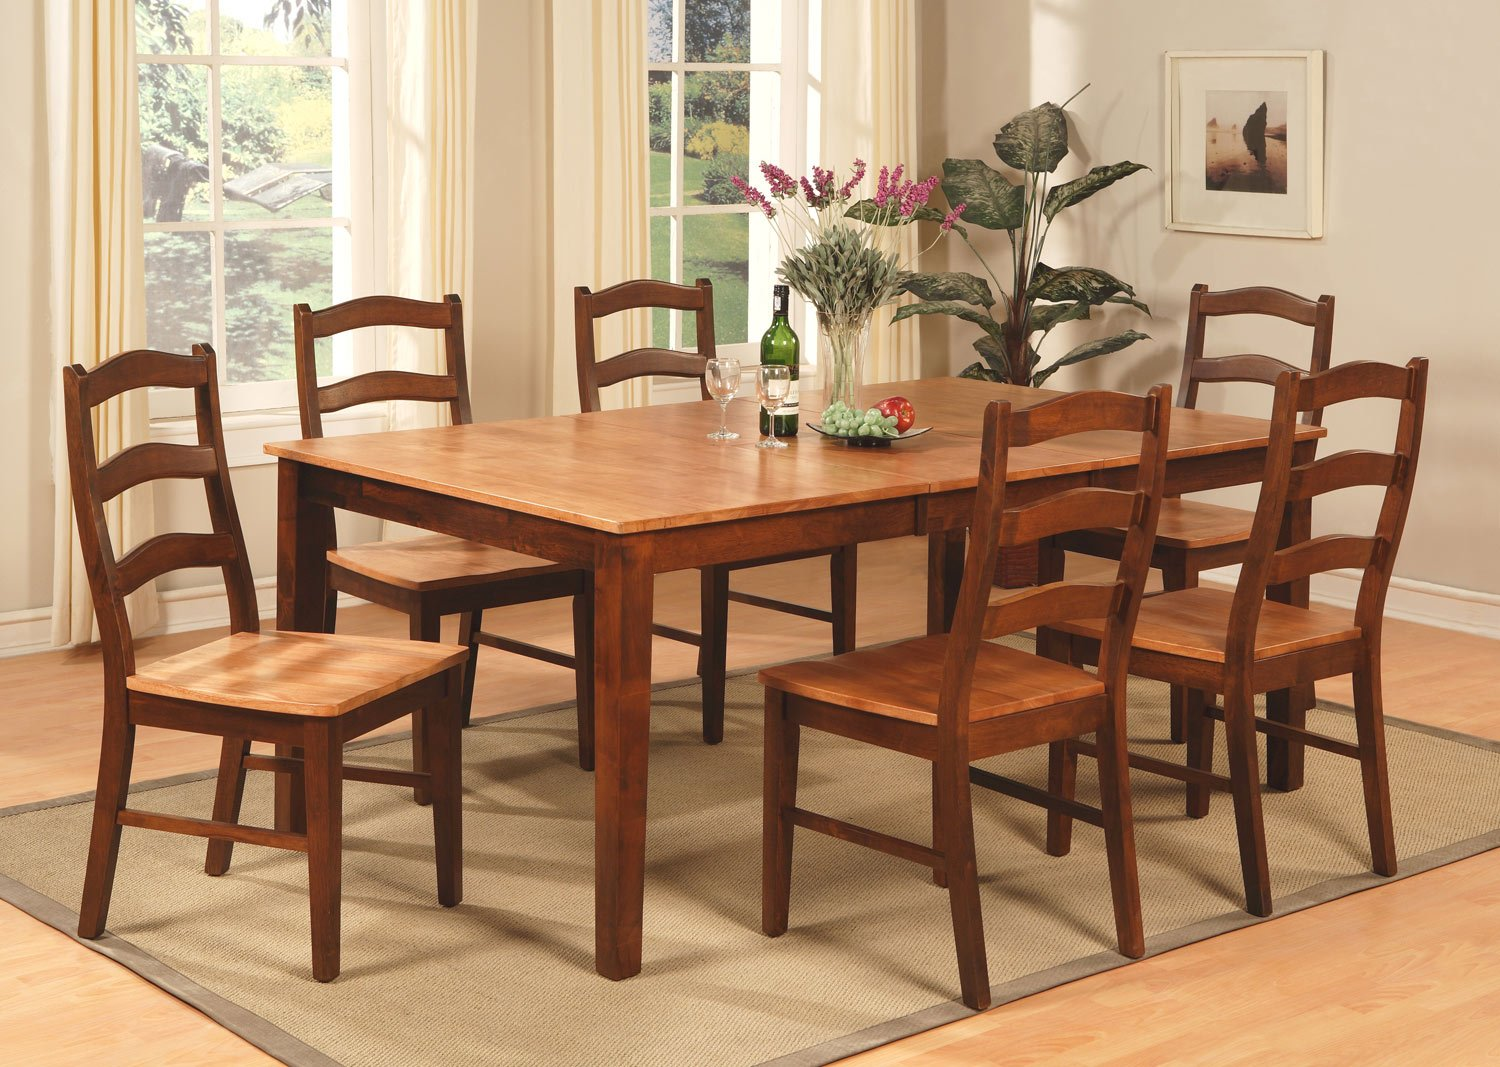 9 Pc Rectangular Dining Room Table amp Chairs Set 42X72  : 4e122485ad500210483b from www.ecrater.com size 1500 x 1067 jpeg 294kB